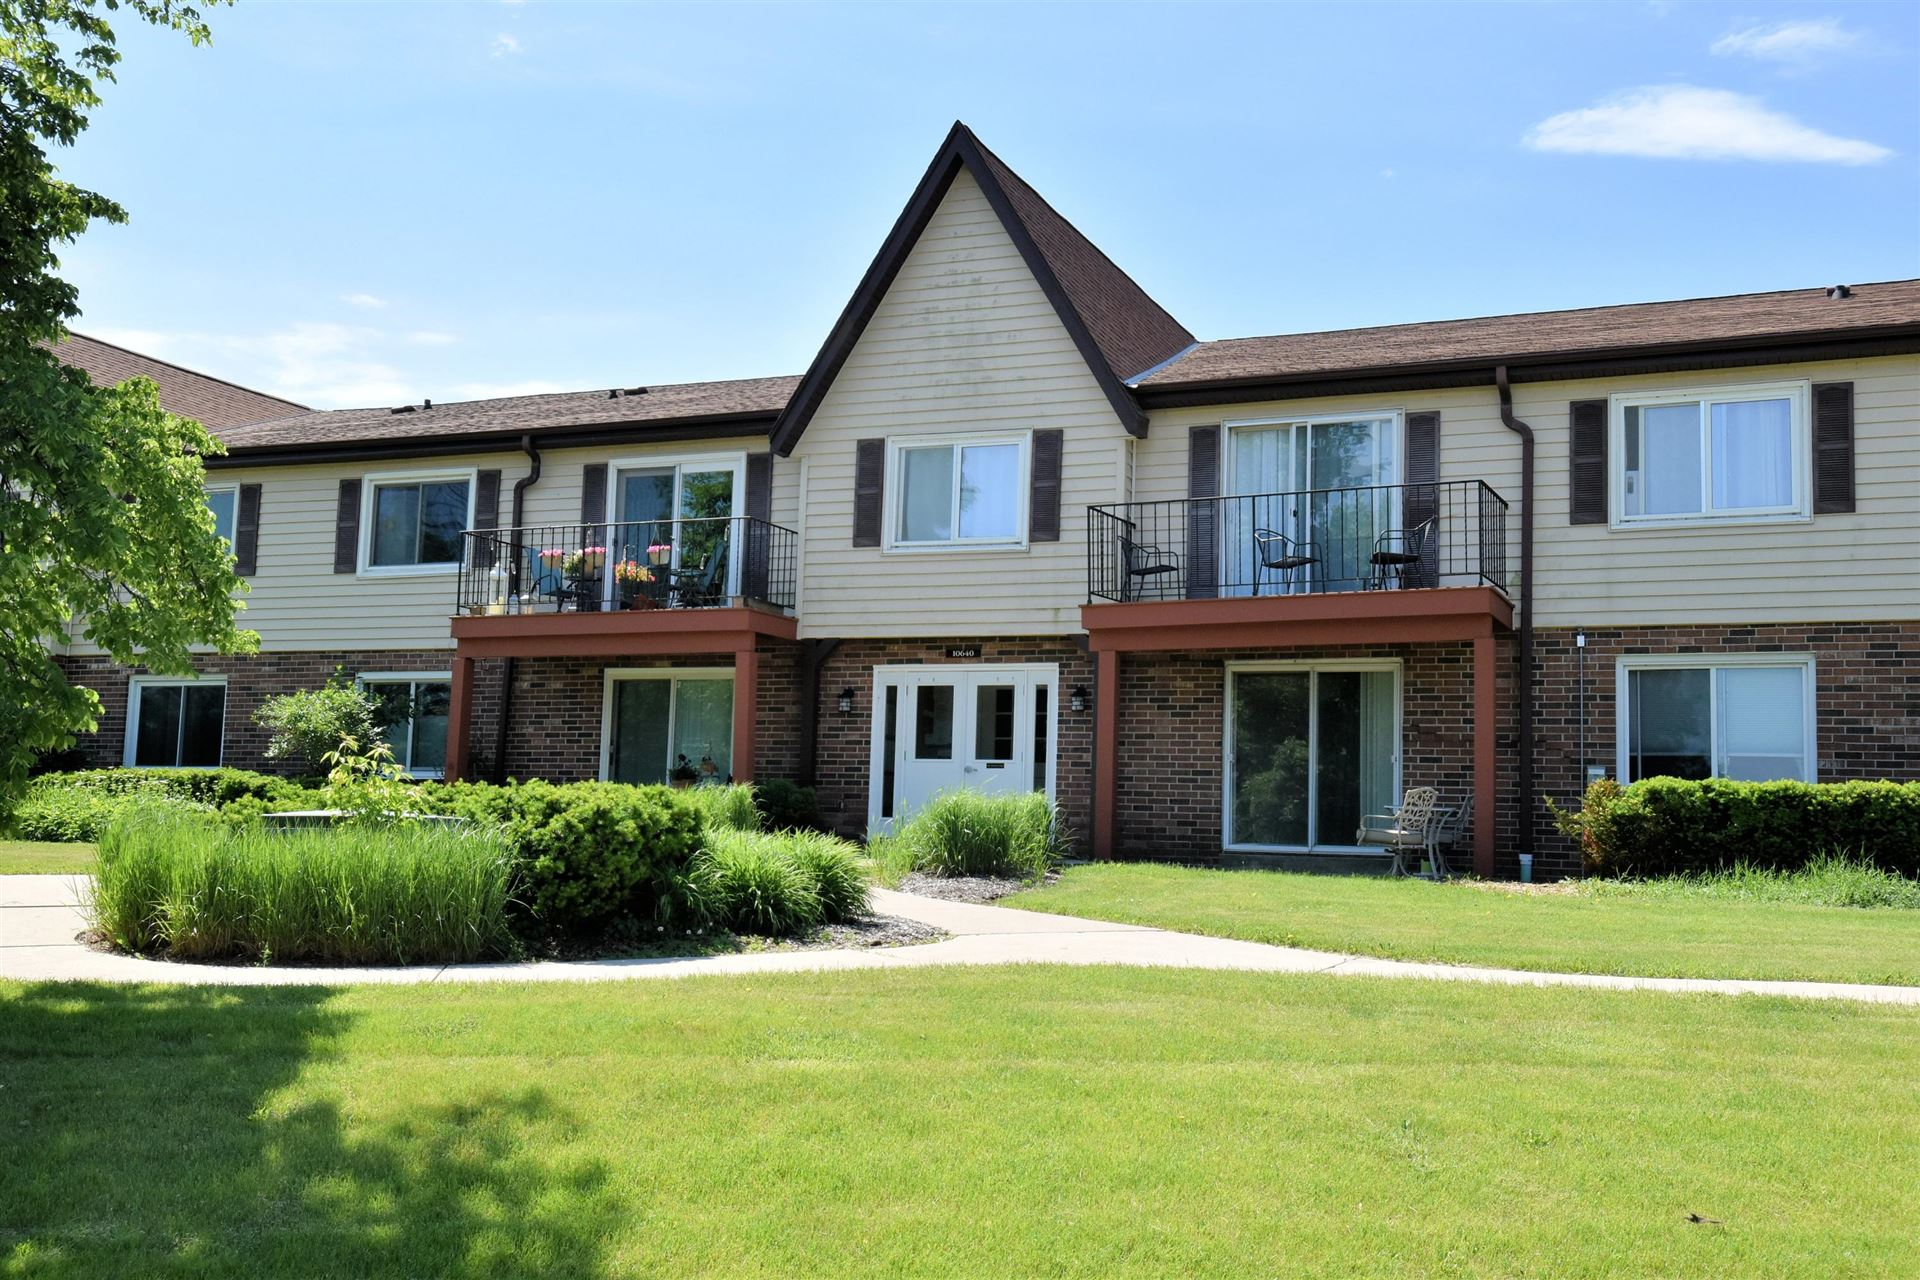 10640 N Ivy Ct #14, Mequon, WI 53092 - #: 1711869